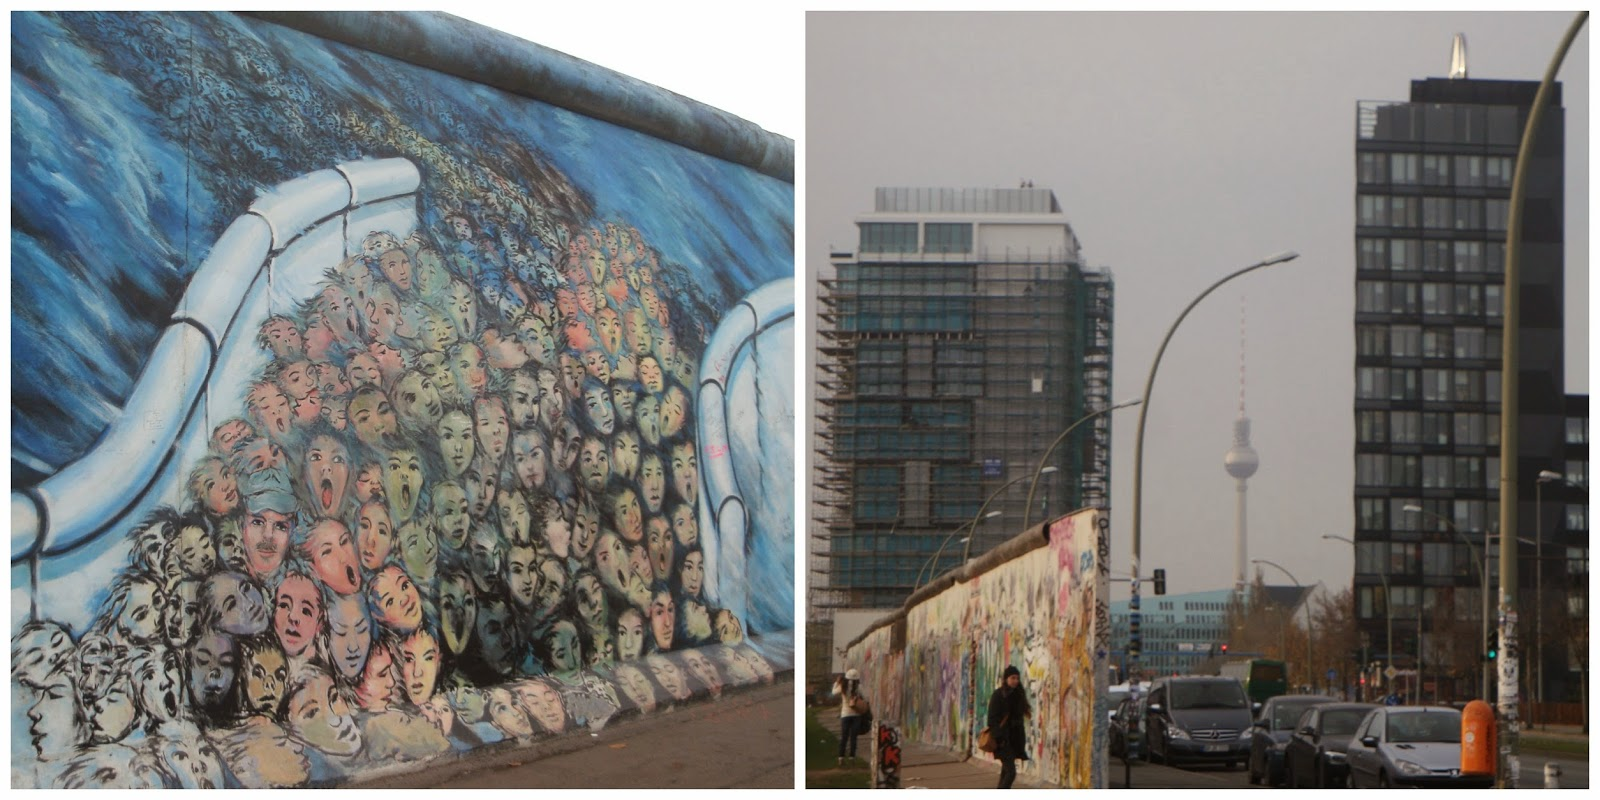 East Side Gallery em Berlim